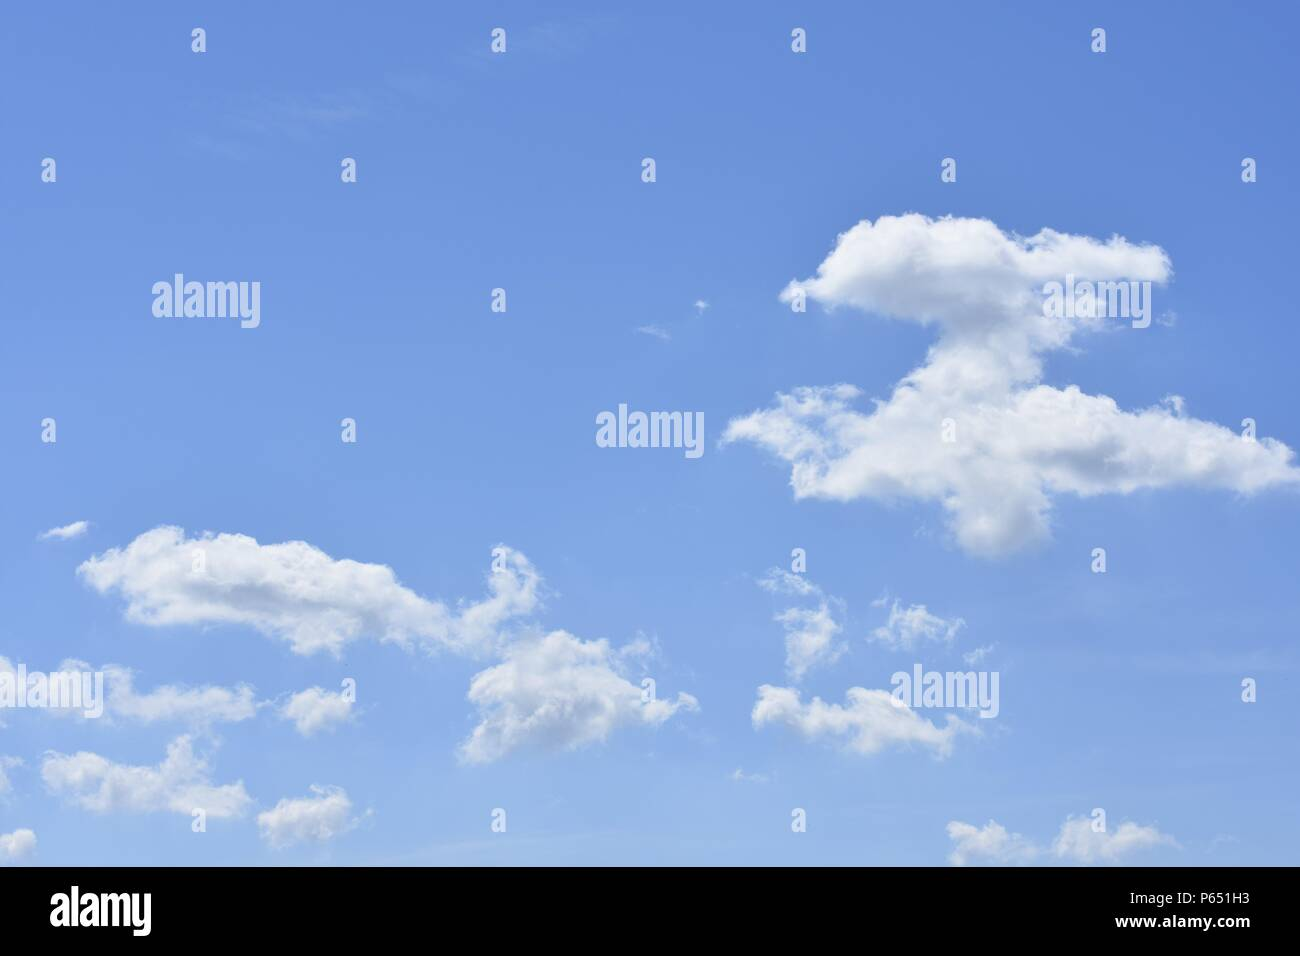 Blue sky with white clouds in different dreamy shapes - Stock Image